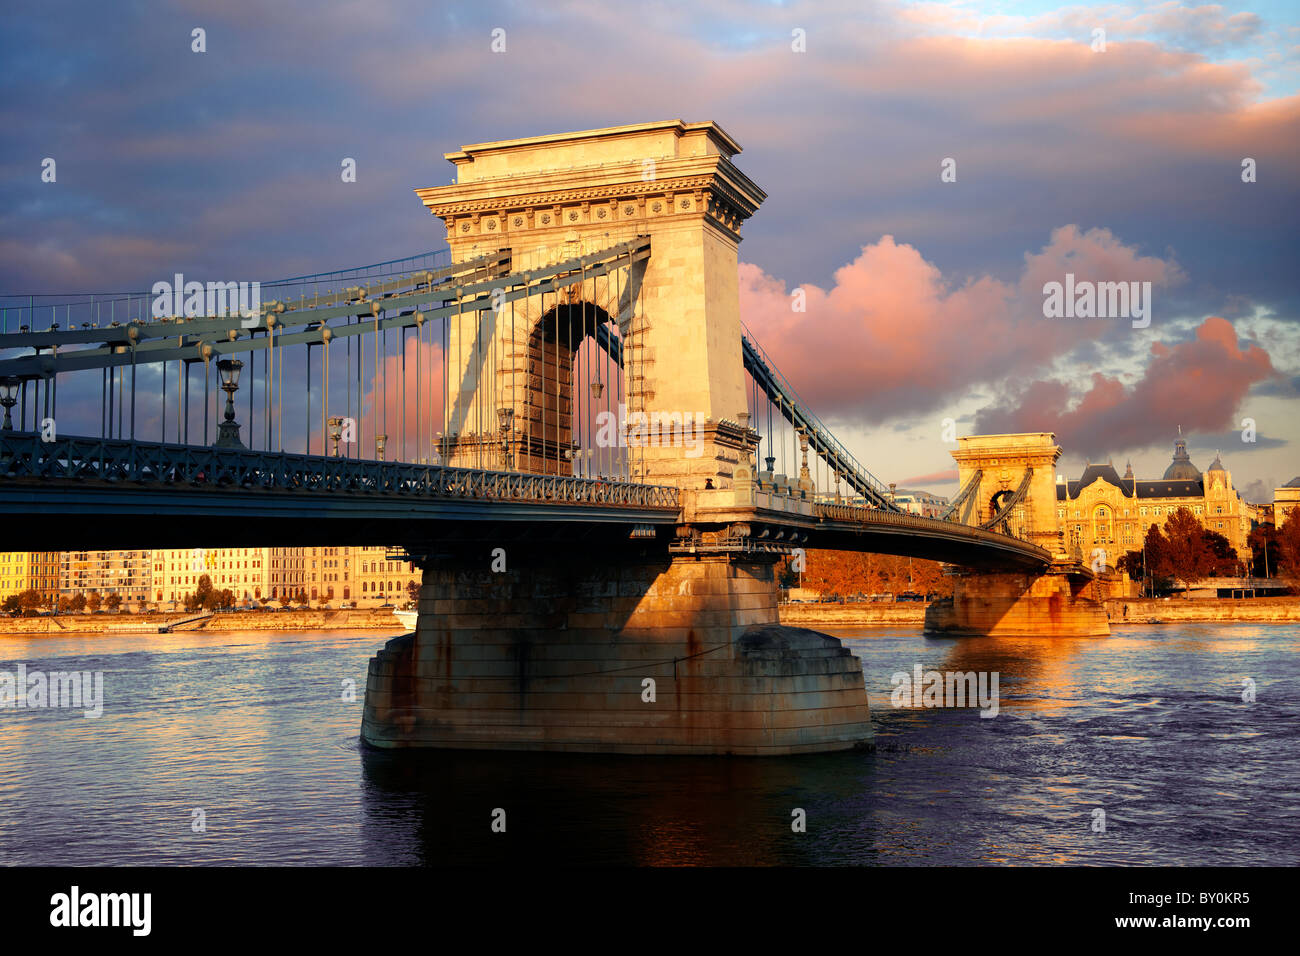 Szecheni Lanchid ( Chain Bridge ). Suspension bridge over the Danube betwen Buda & Pest. Budapest Hungary - Stock Image